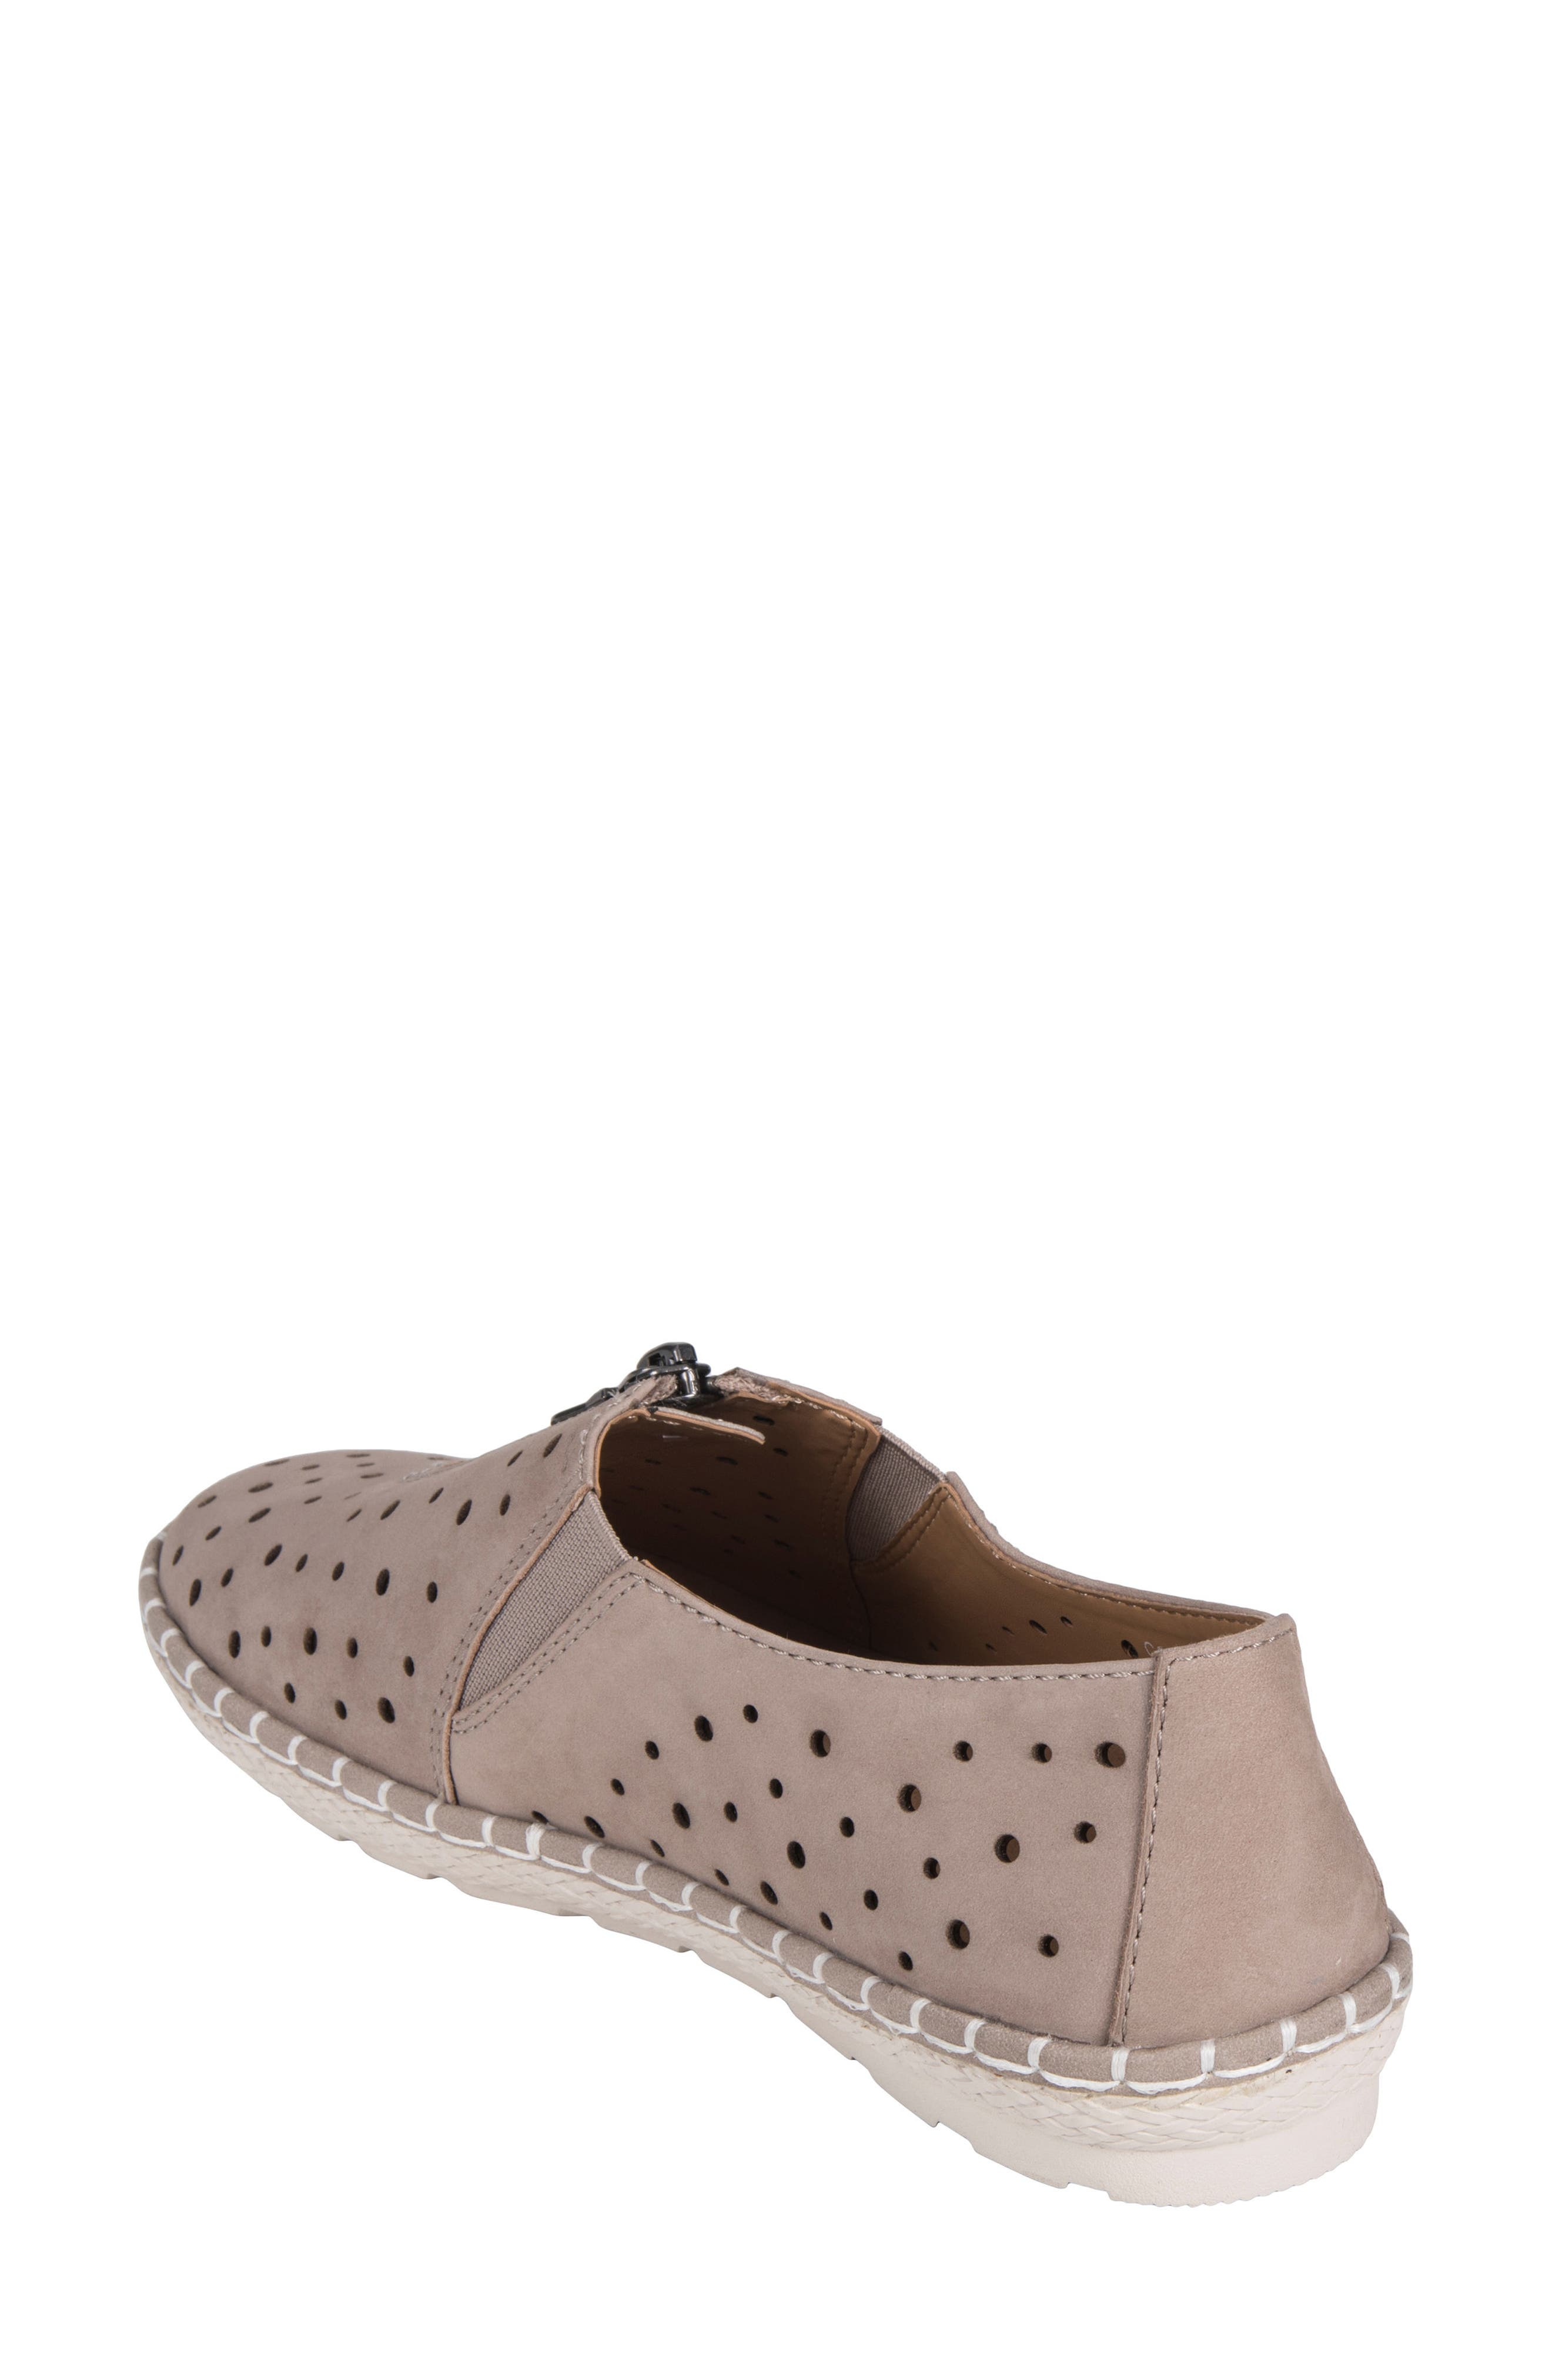 Callisto Perforated Zip Moccasin,                             Alternate thumbnail 2, color,                             TAUPE NUBUCK